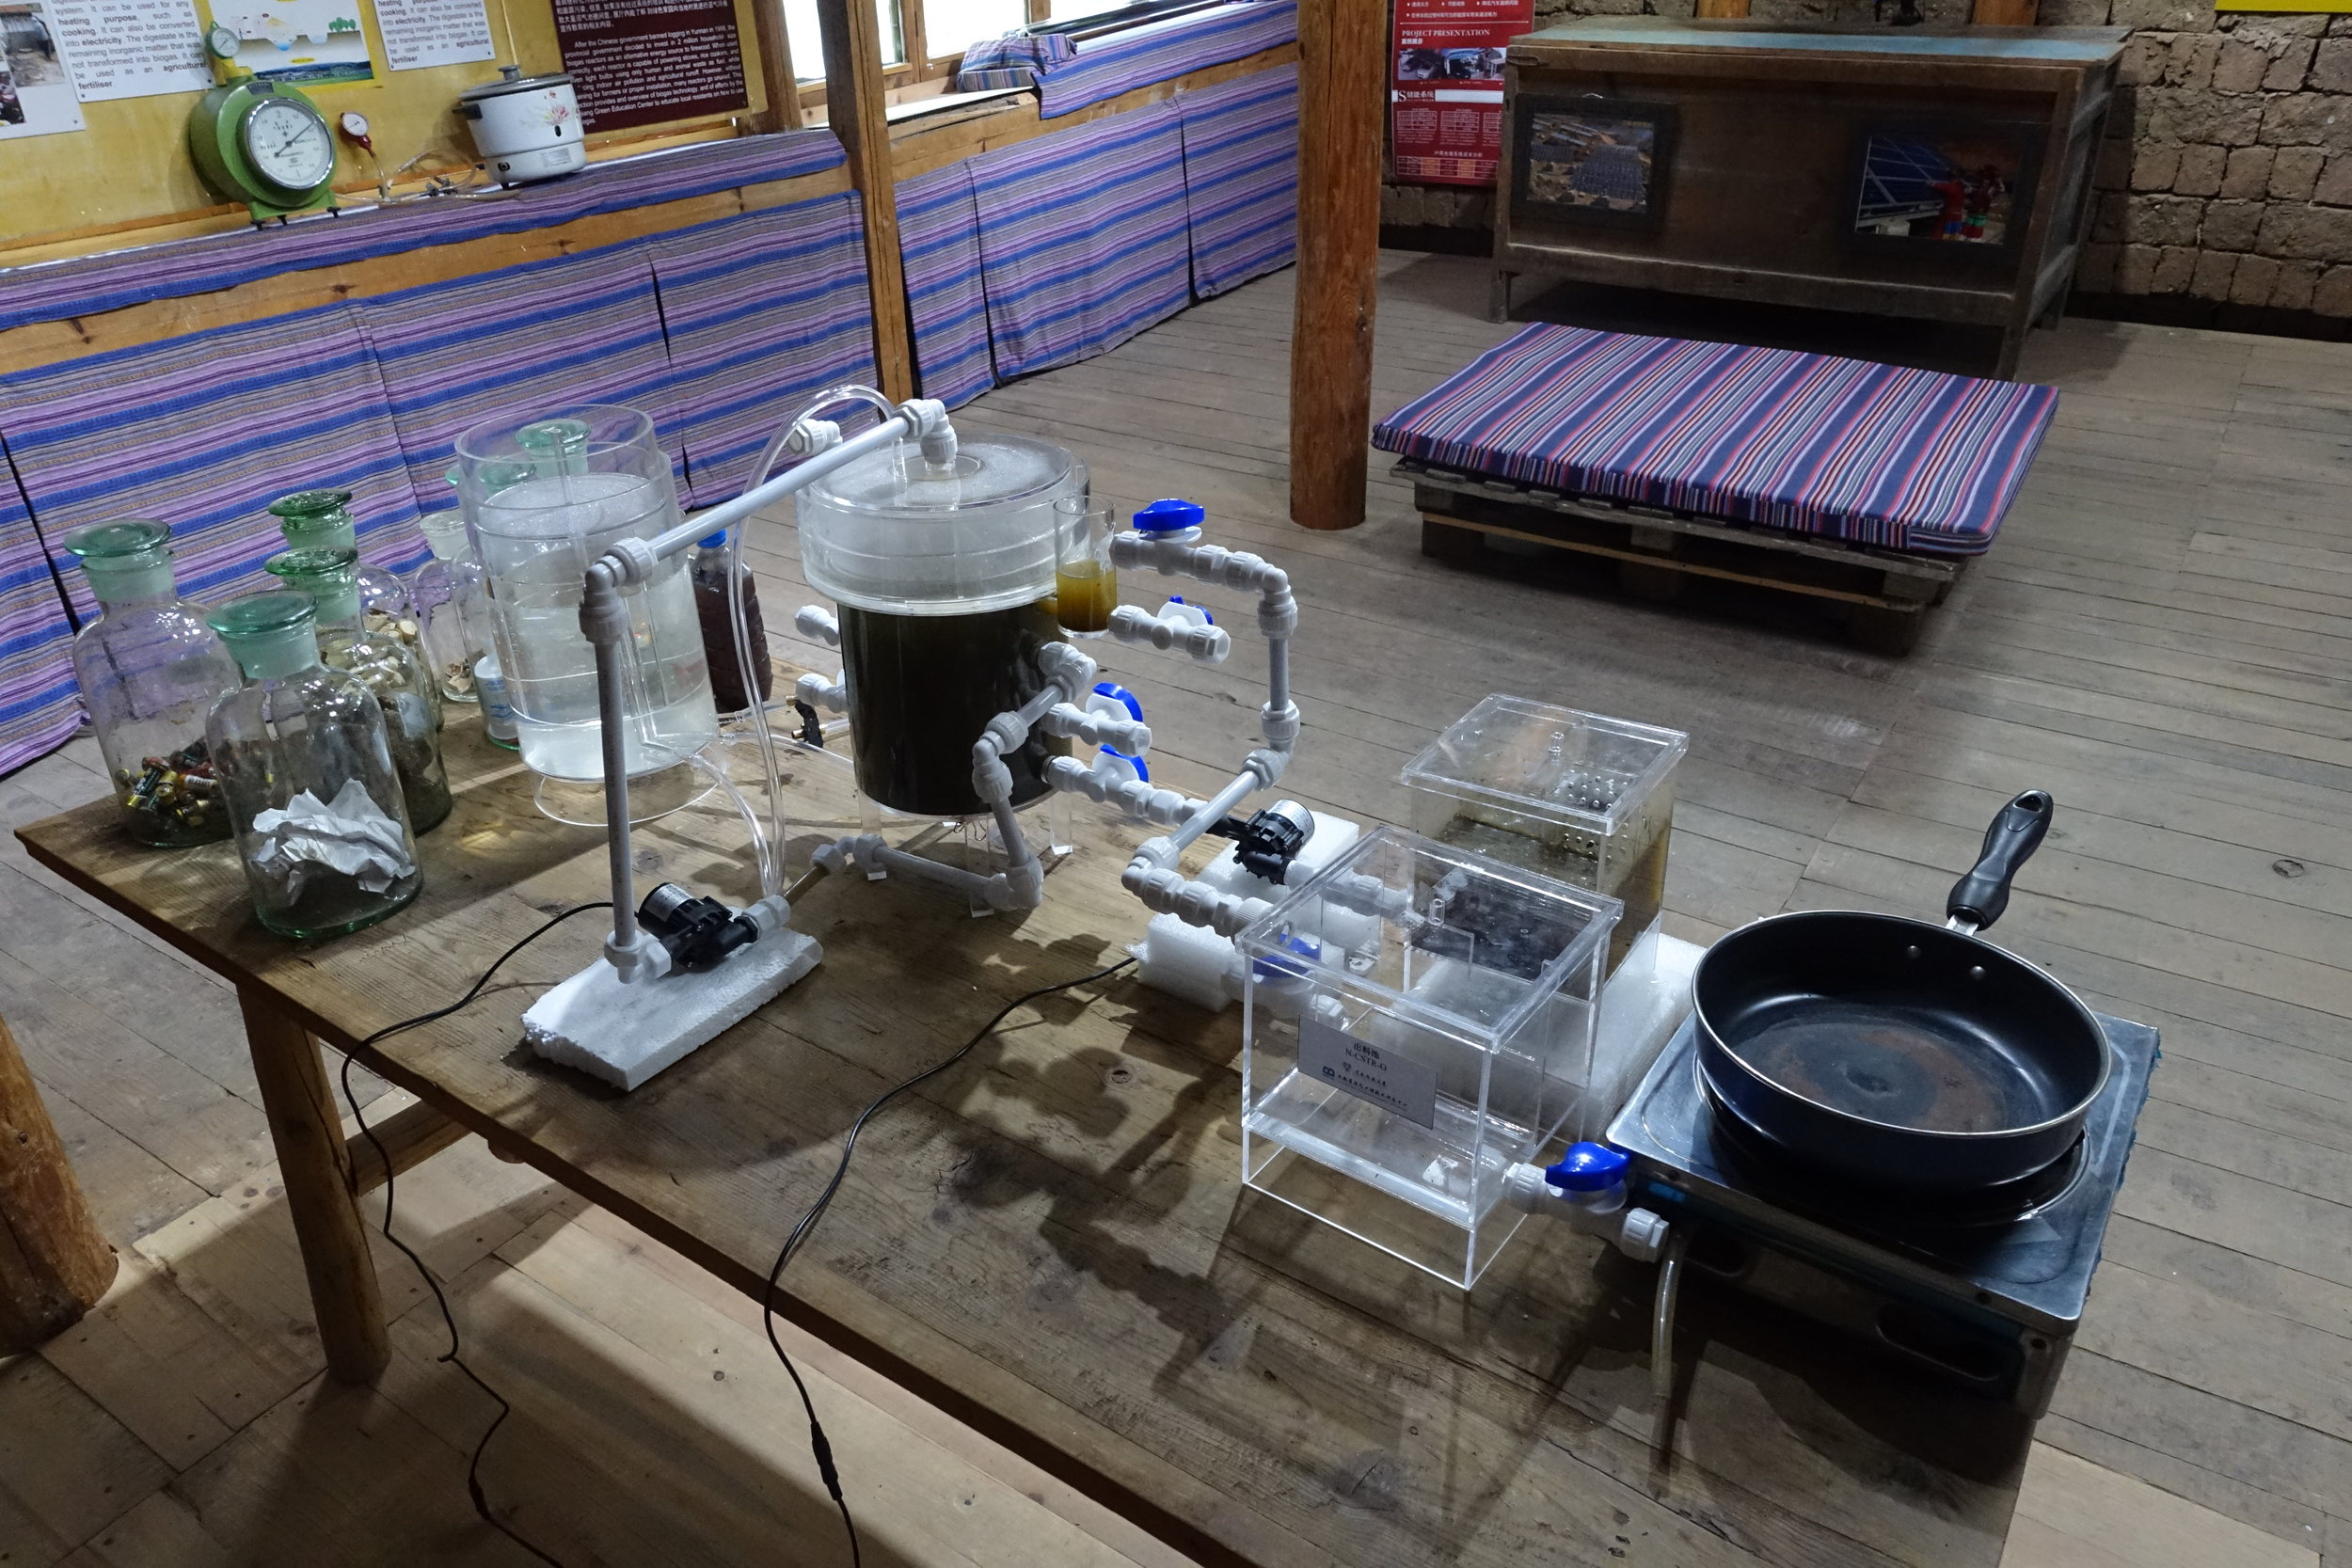 A fully functional small scale model of biogas generator, generously donated by Prof. Zhang Wudi of Yunnan Normal University